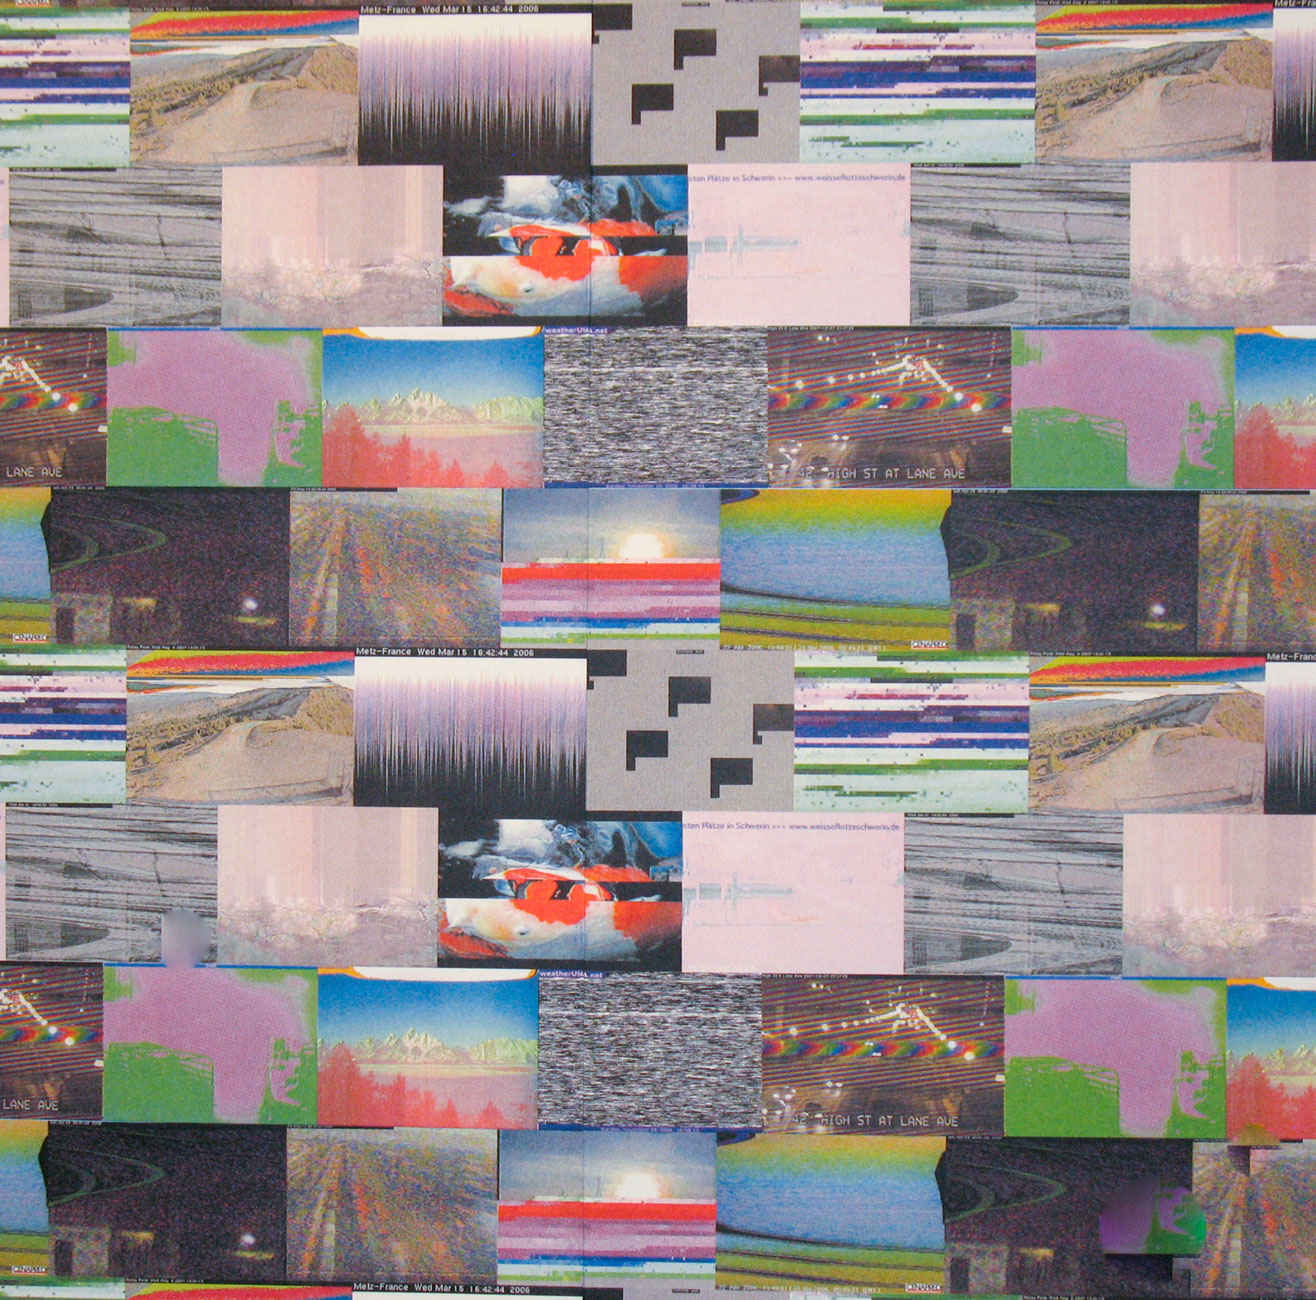 The Aesthetics Of The Glitch Are Cele Ted Here As A Repeating Pattern Wallpaper Design It Is Originally Born From Publicly Available Webcams That